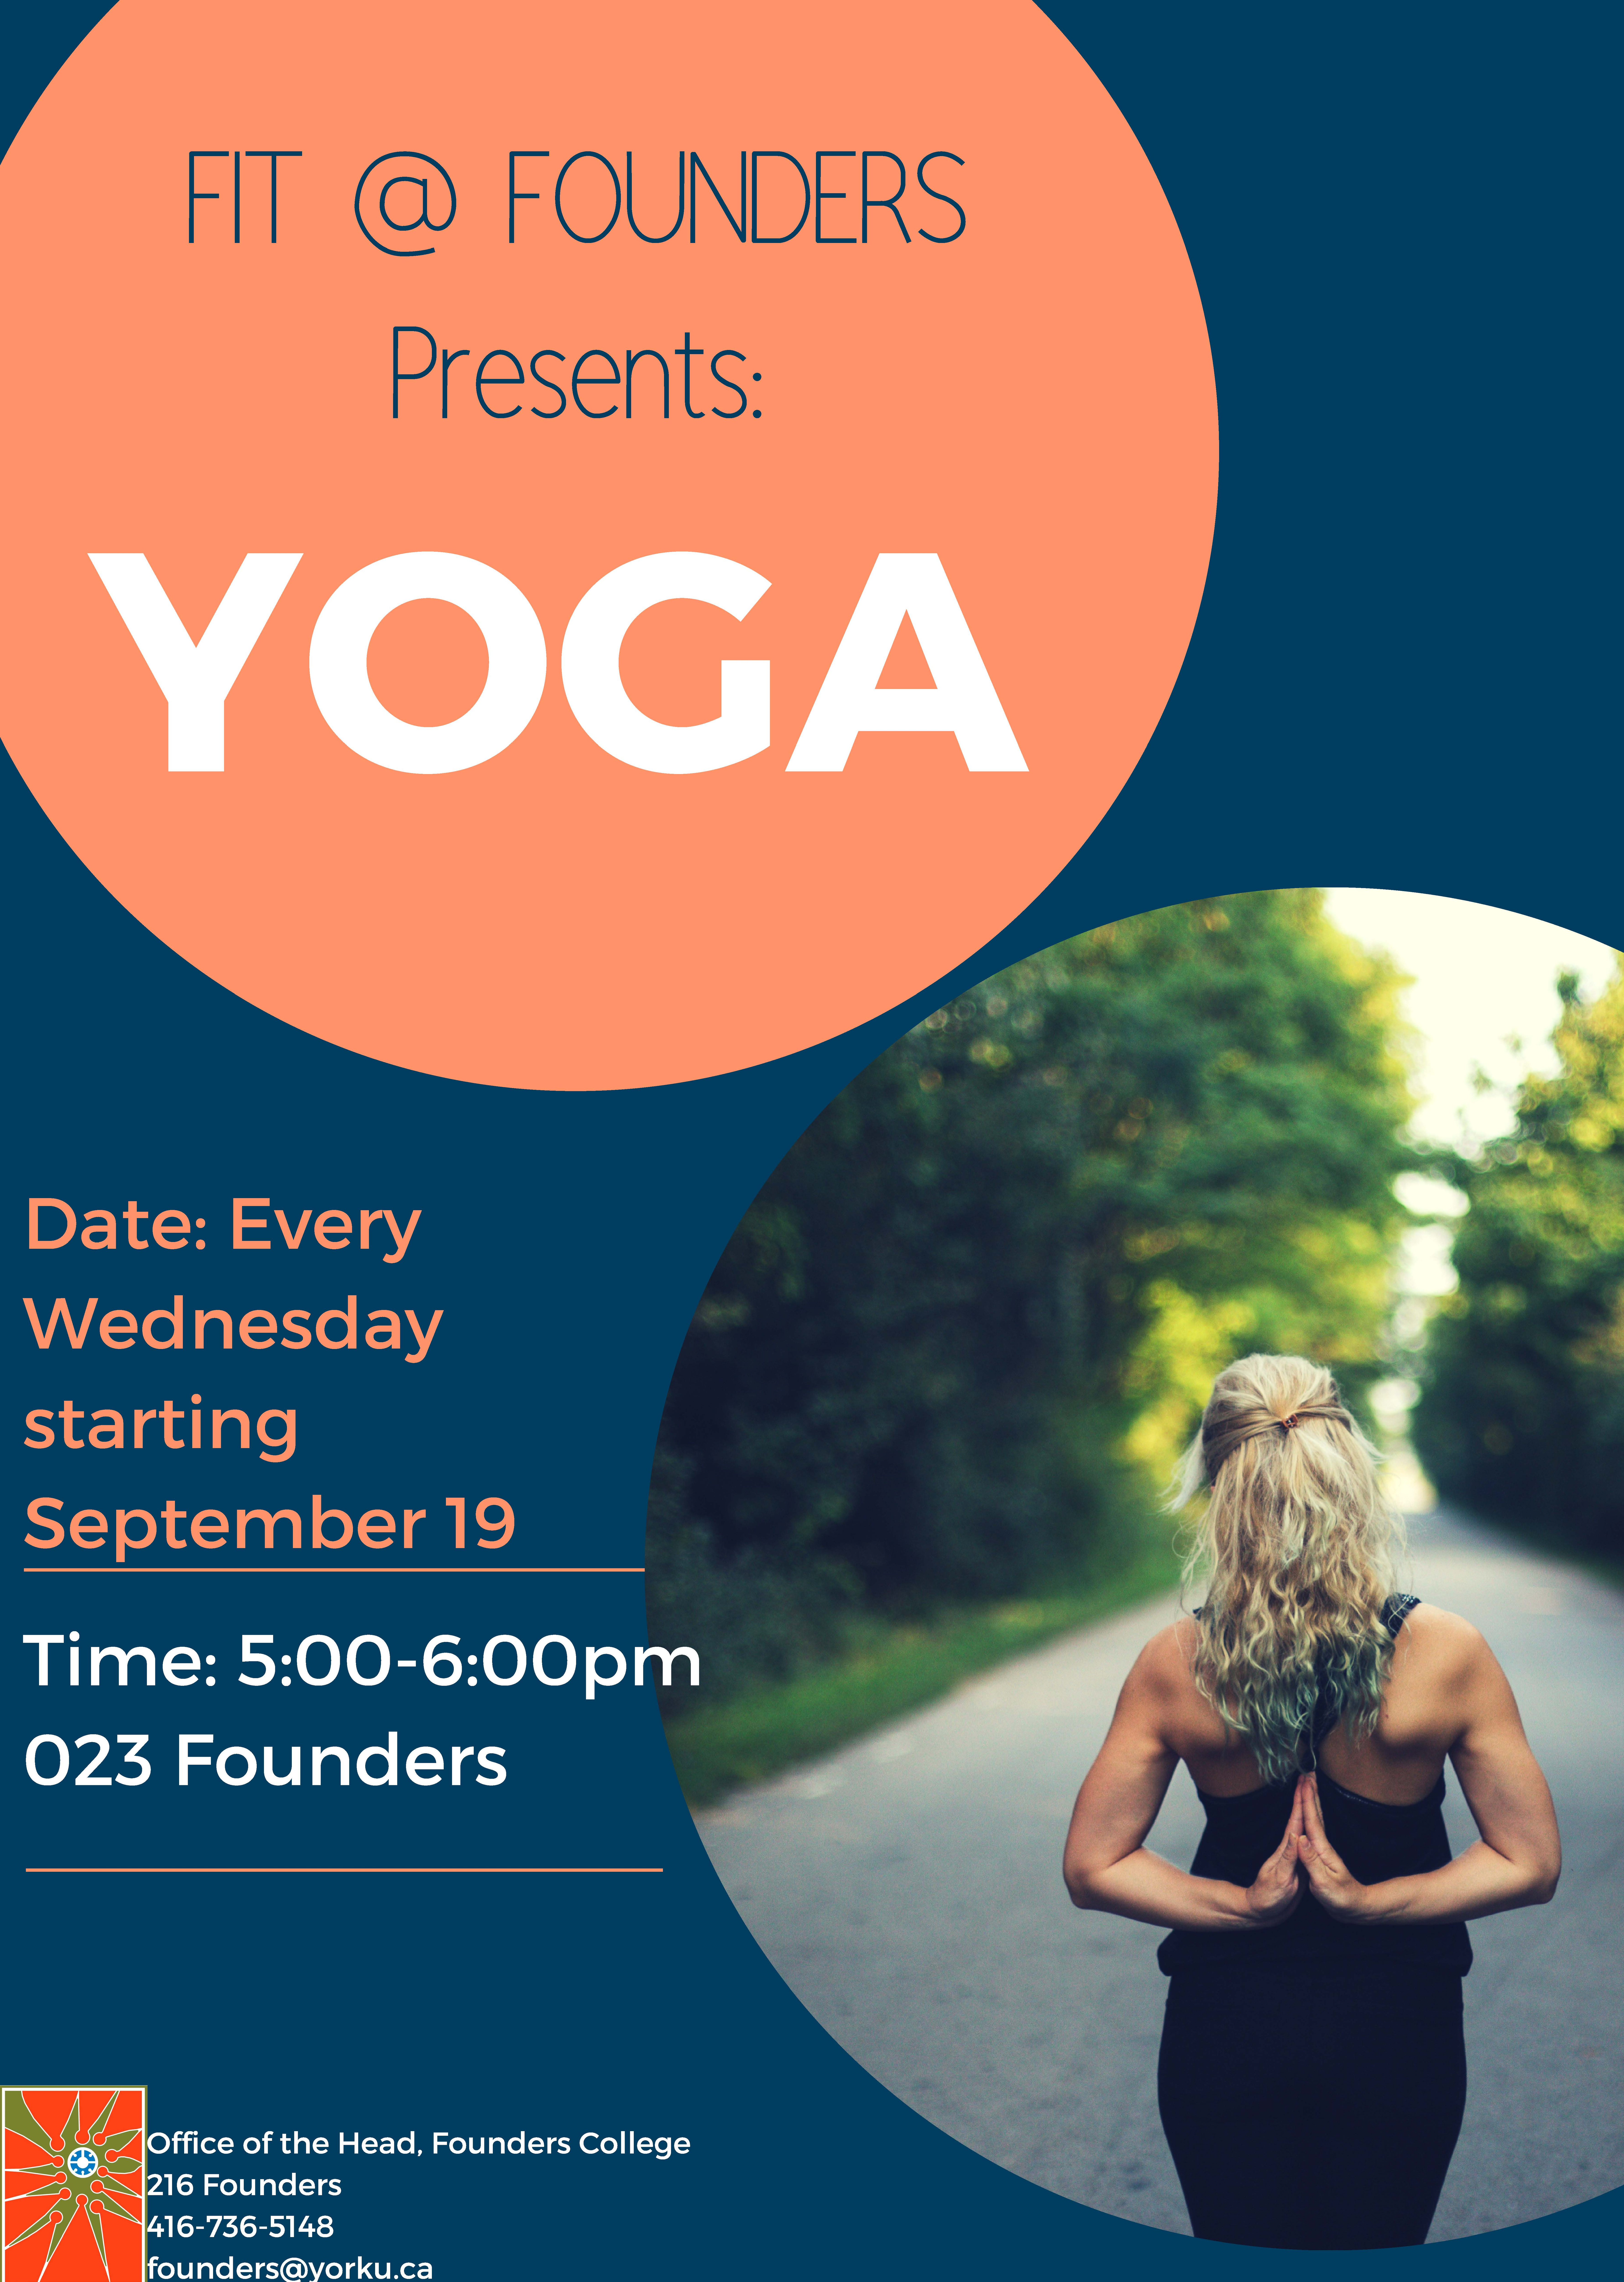 Fit at Founders Presents: YOGA @ 023 Founders